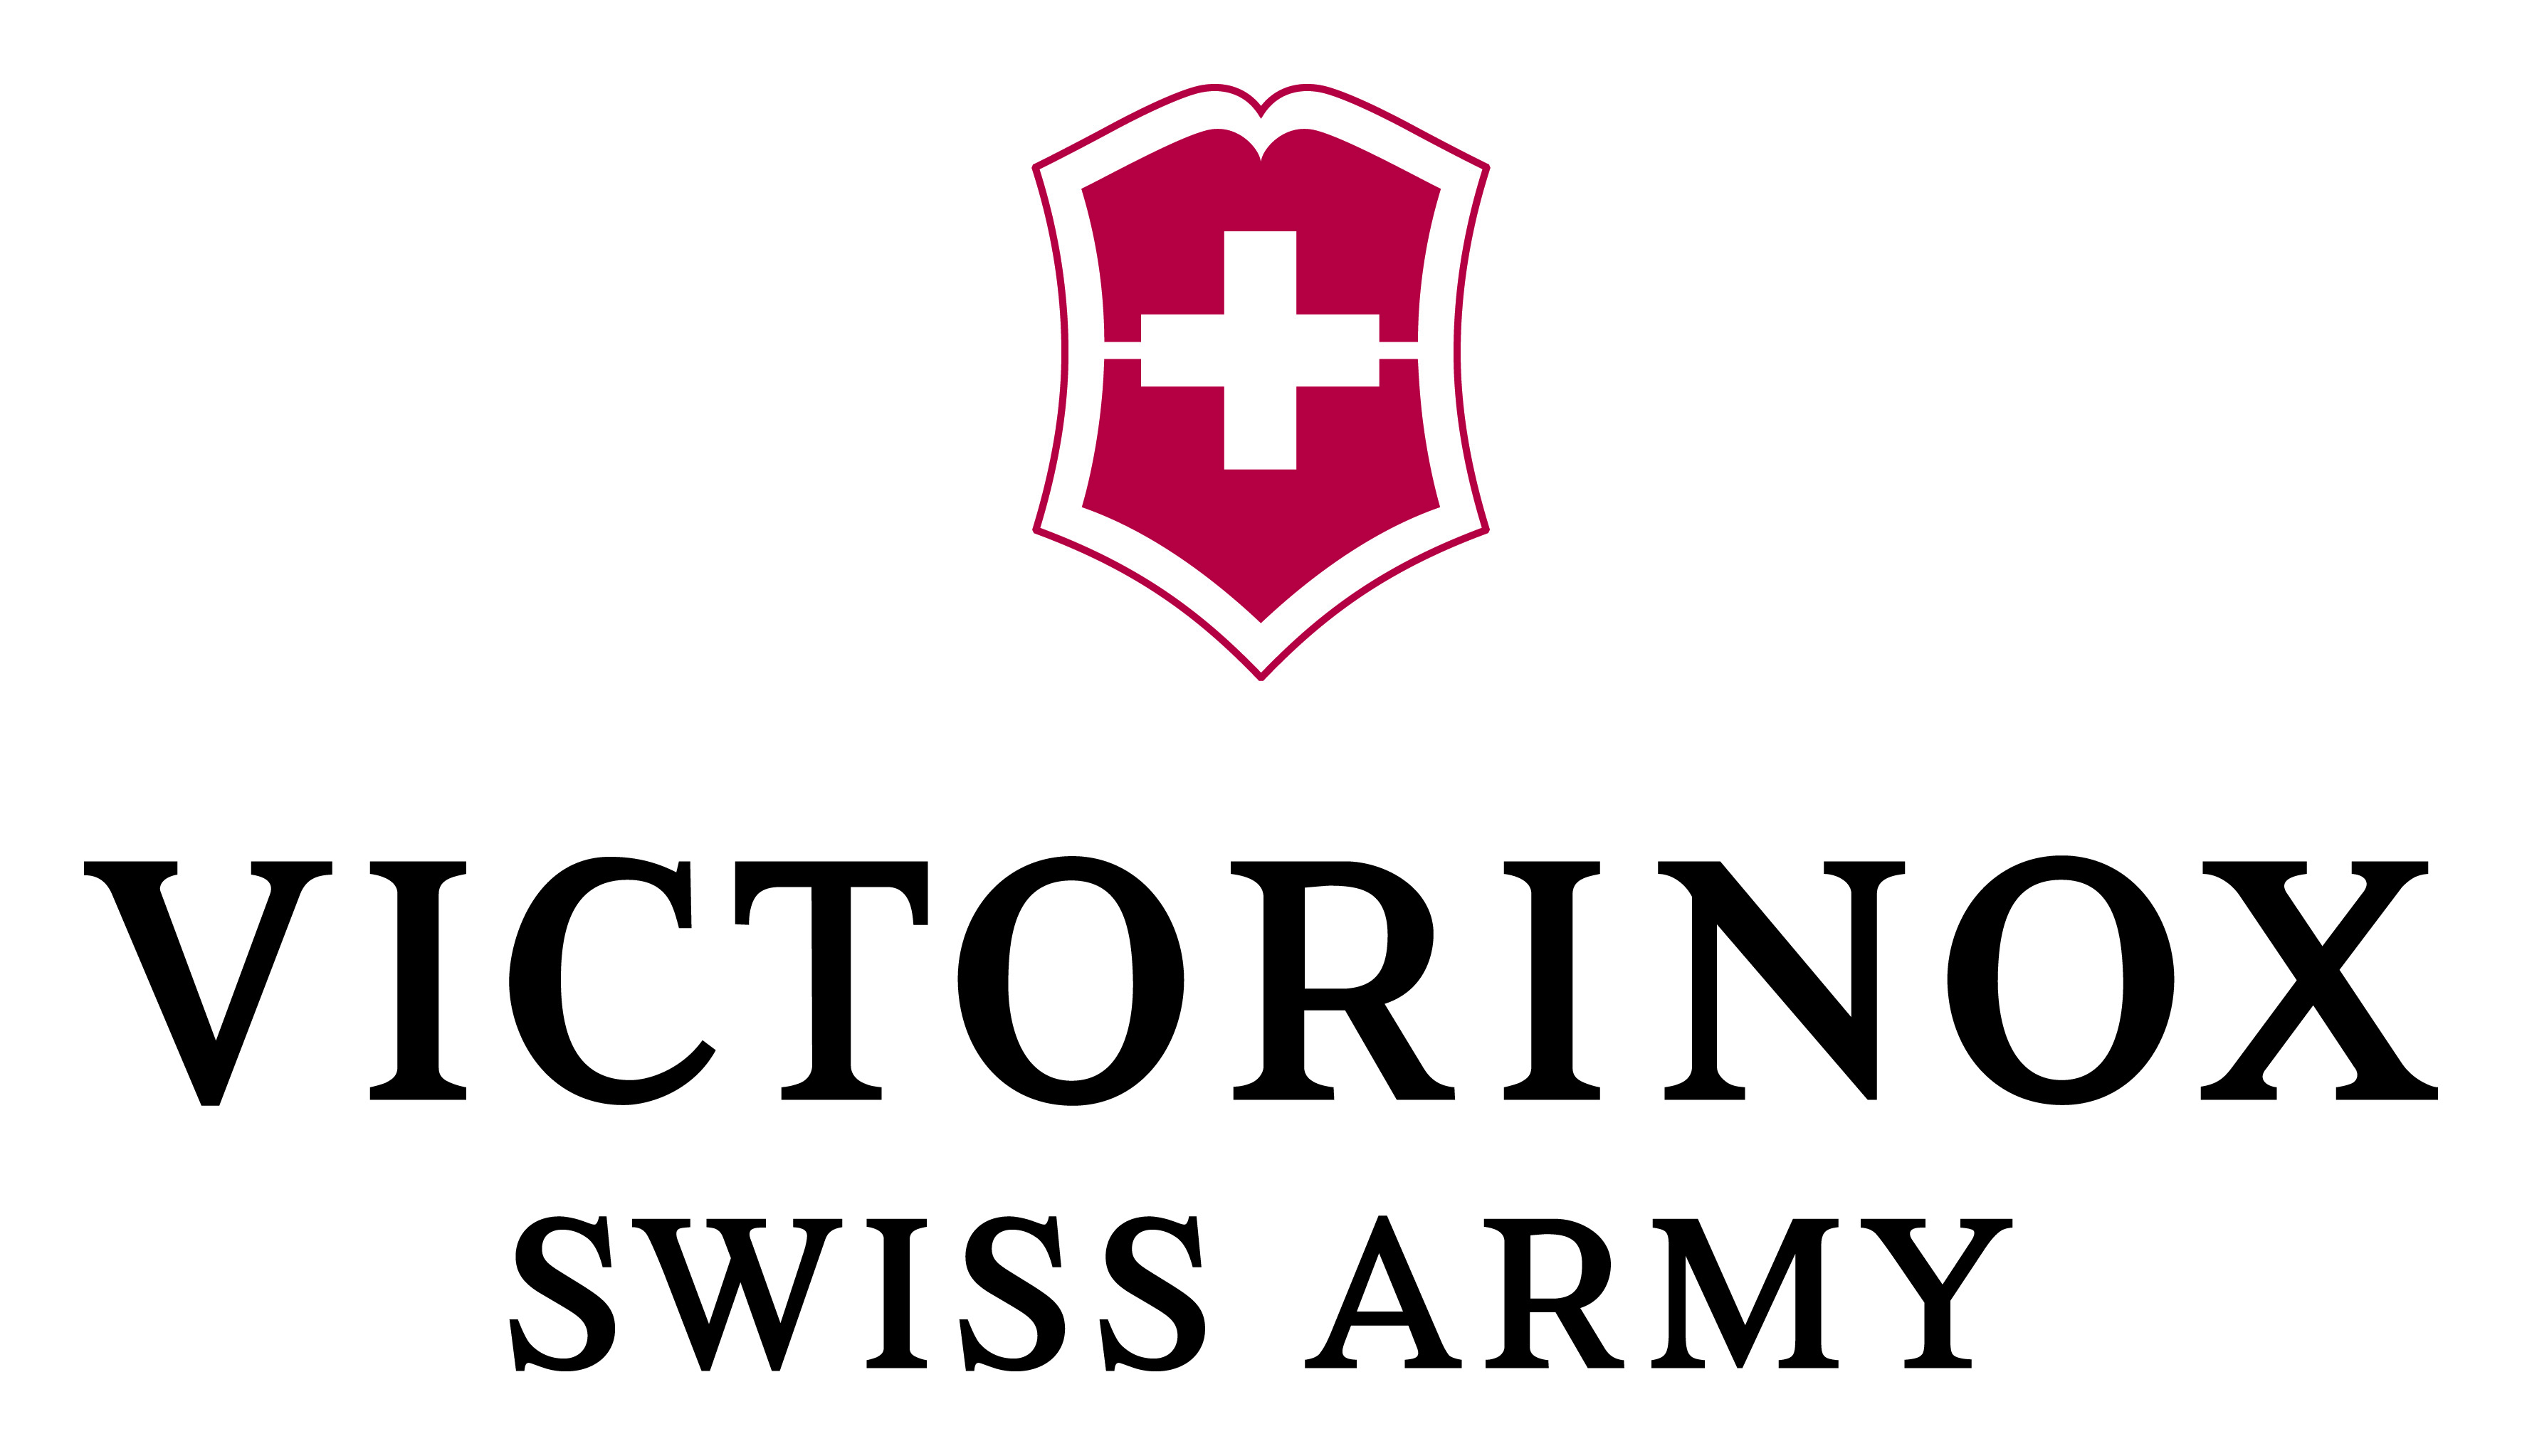 VICTORINOX SWISS ARMY, INC. (VSA)